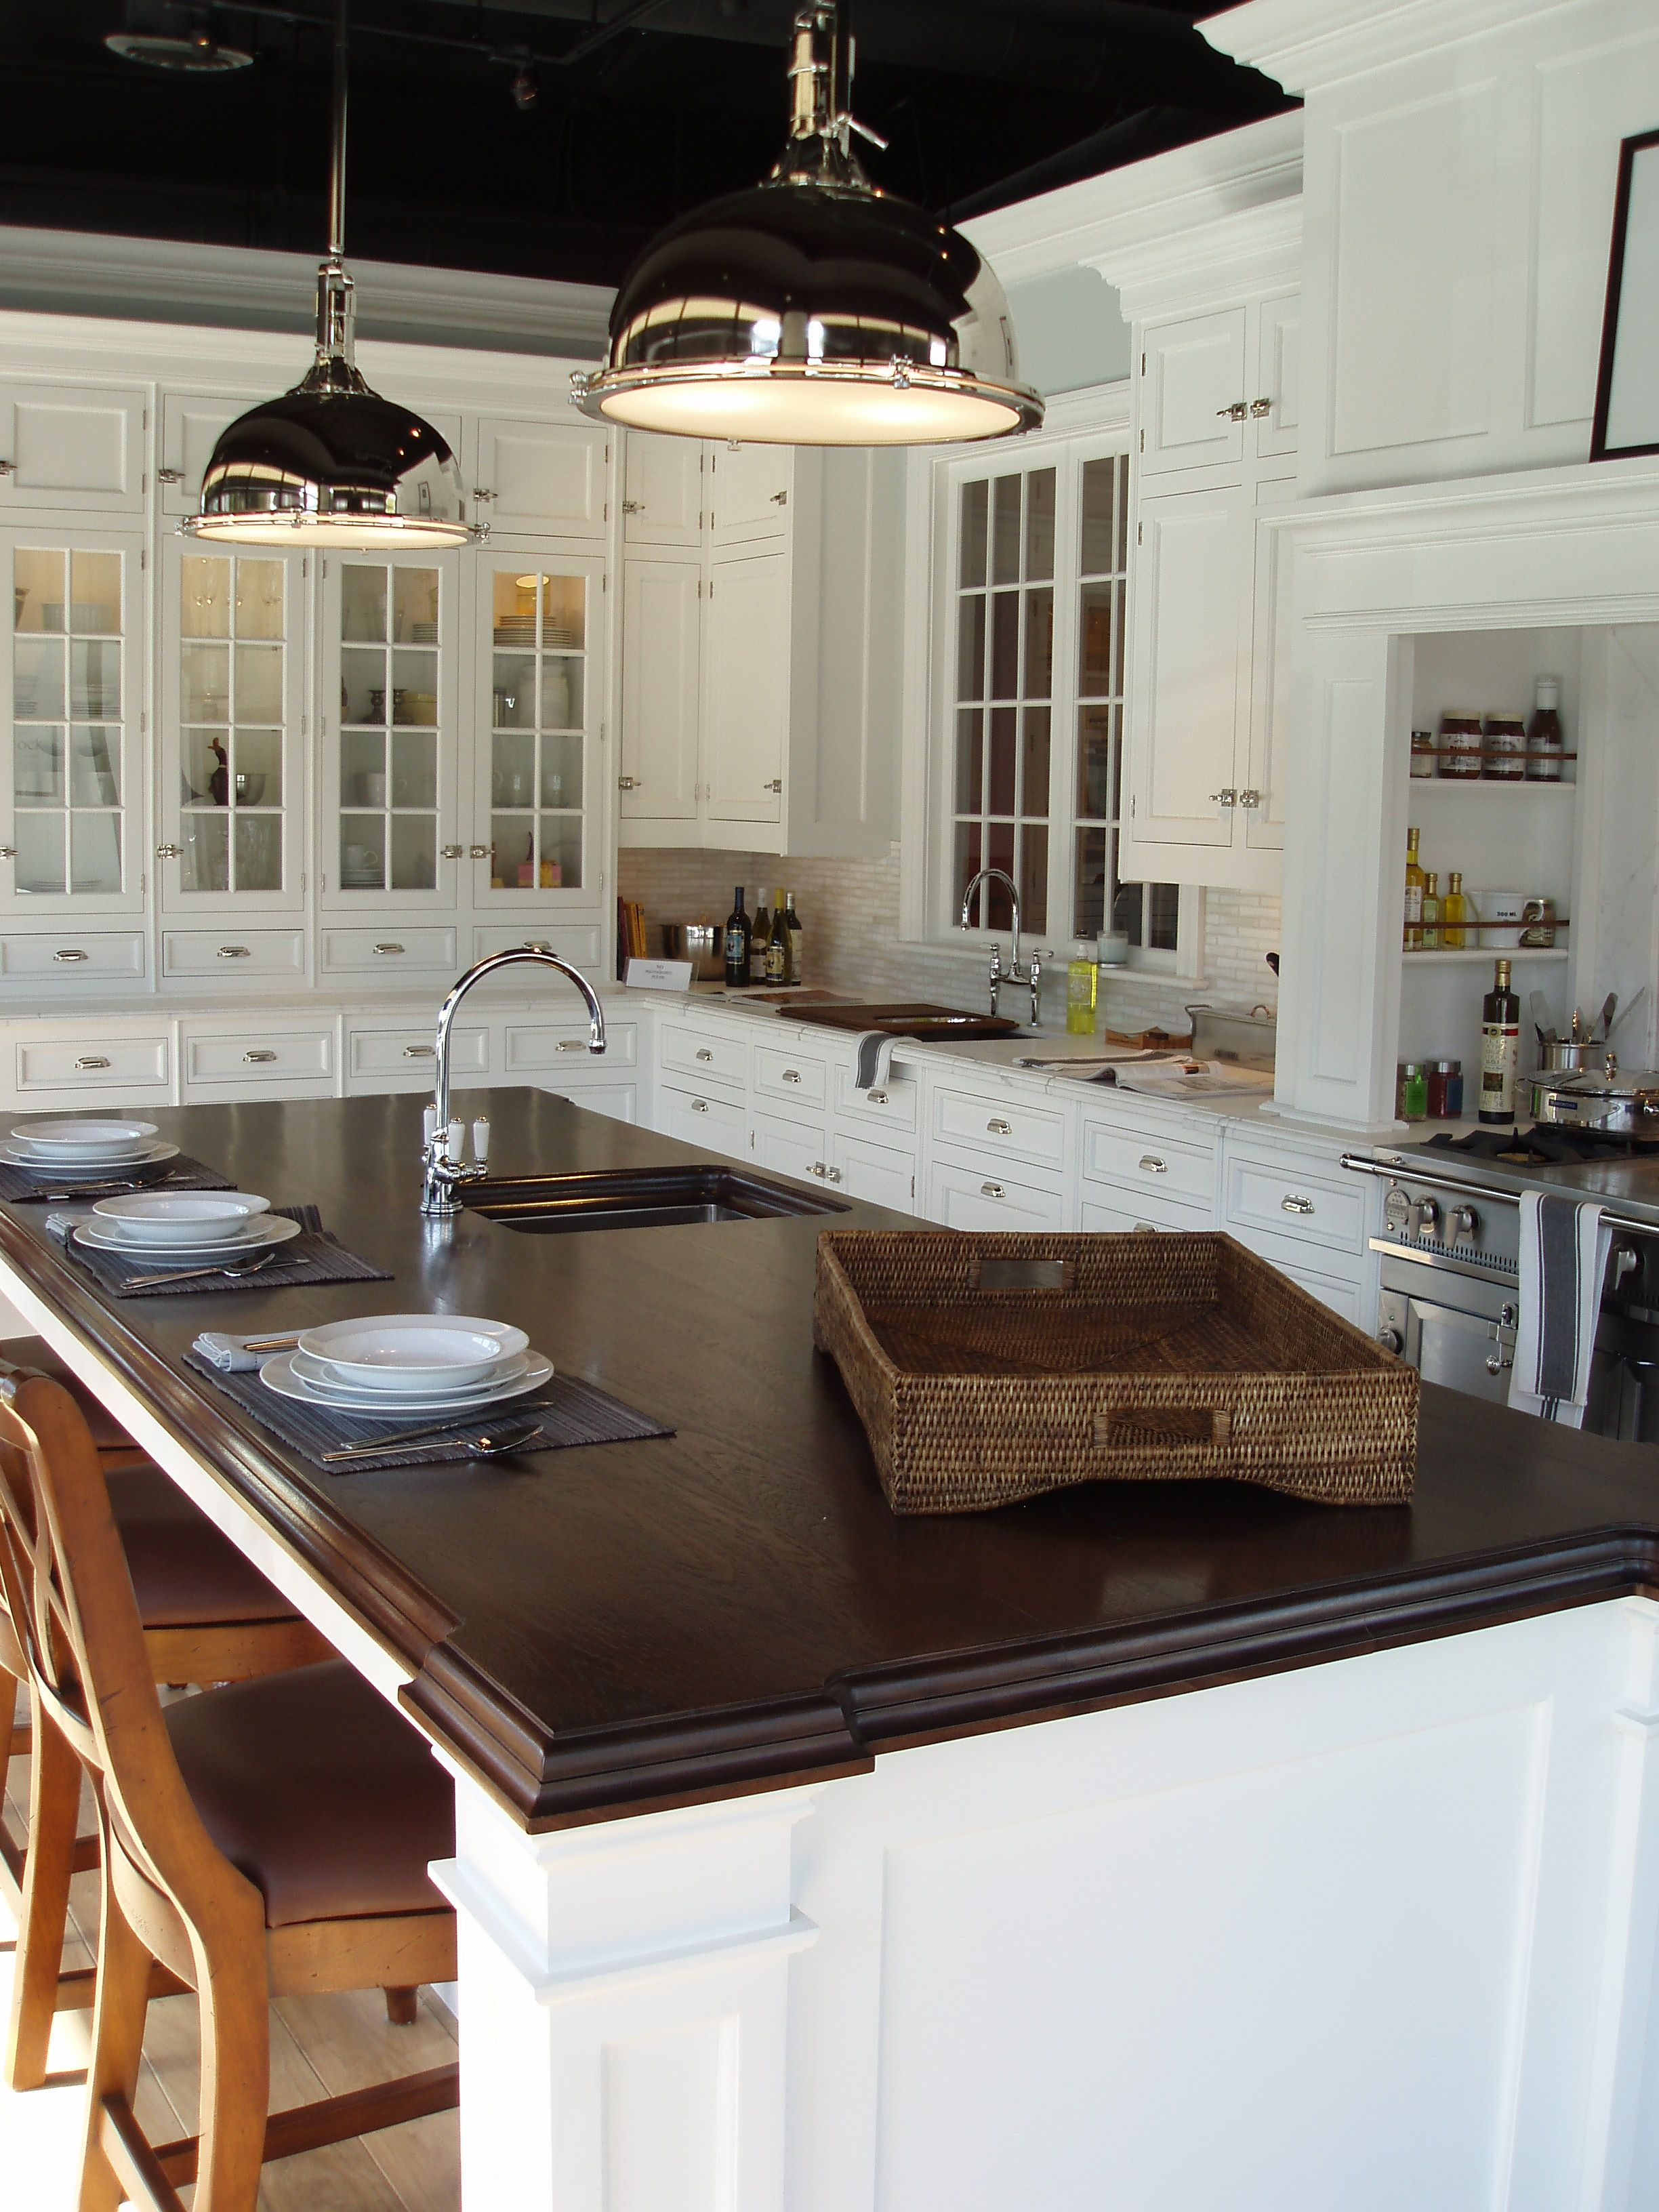 q popular countertop materials for 2012 zinc and walnut, concrete  countertops, countertops, Walnut top it s a classic and looks great